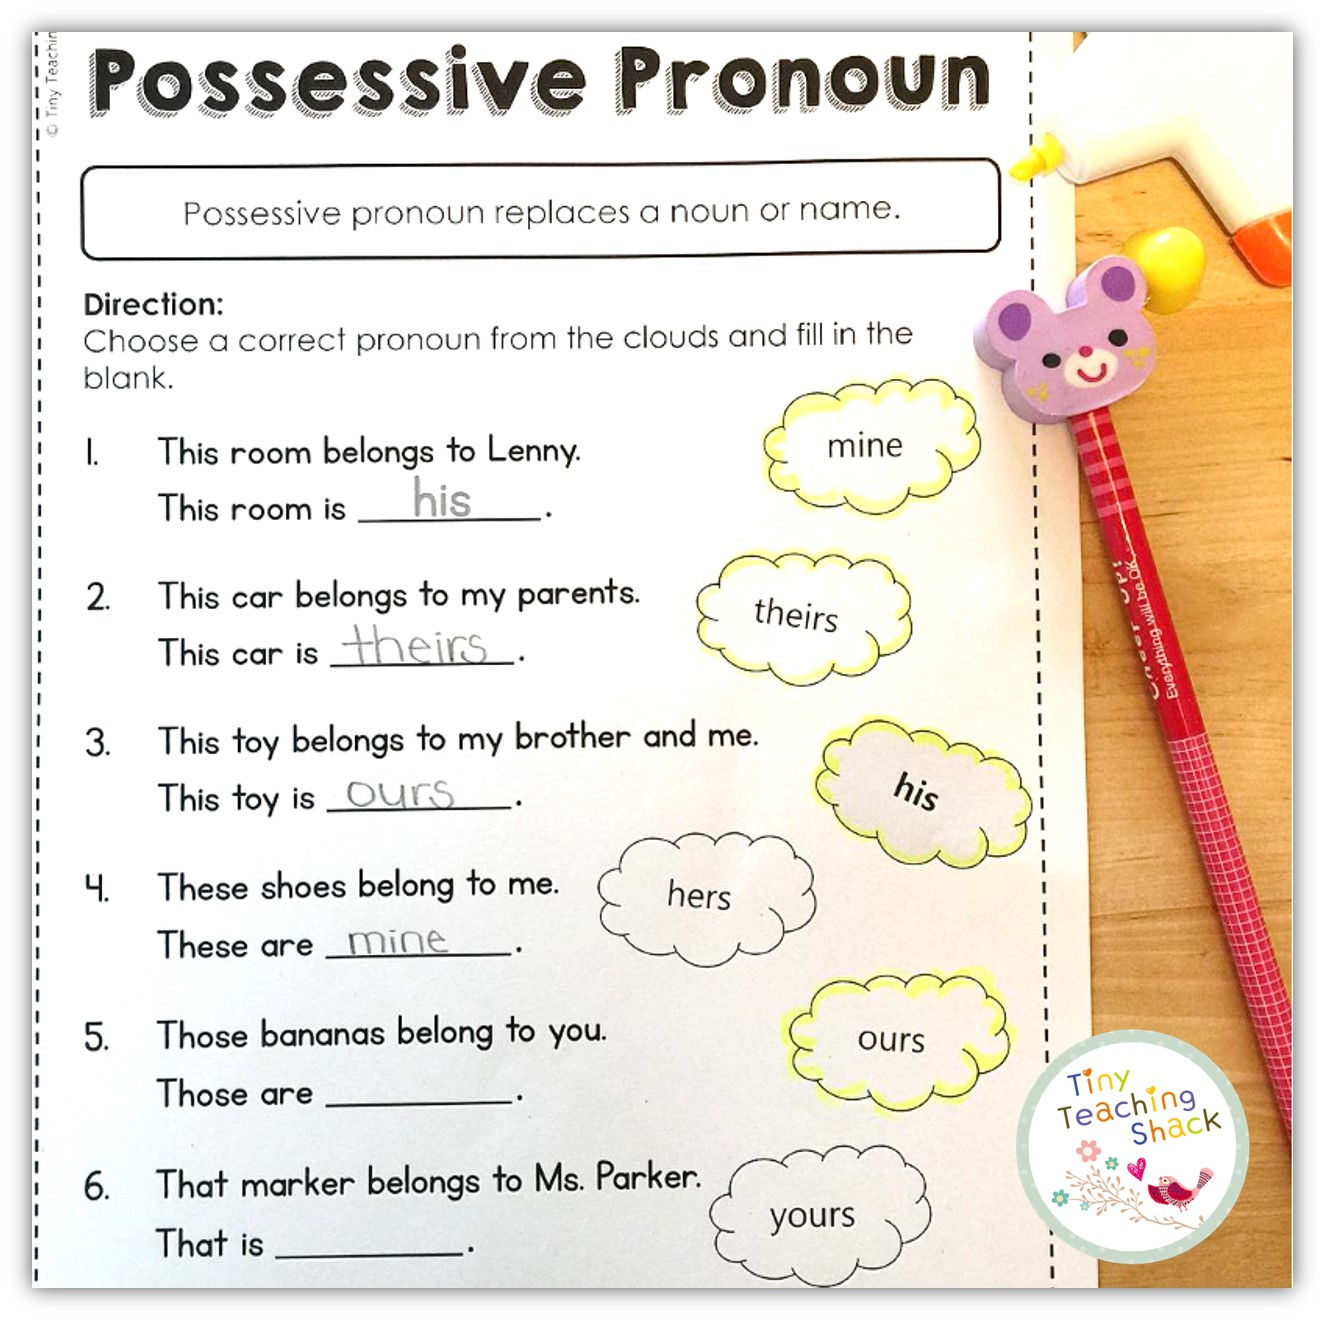 Workbooks reflexive pronoun worksheets for 2nd grade : professional dissertation hypothesis proofreading for hire for ...